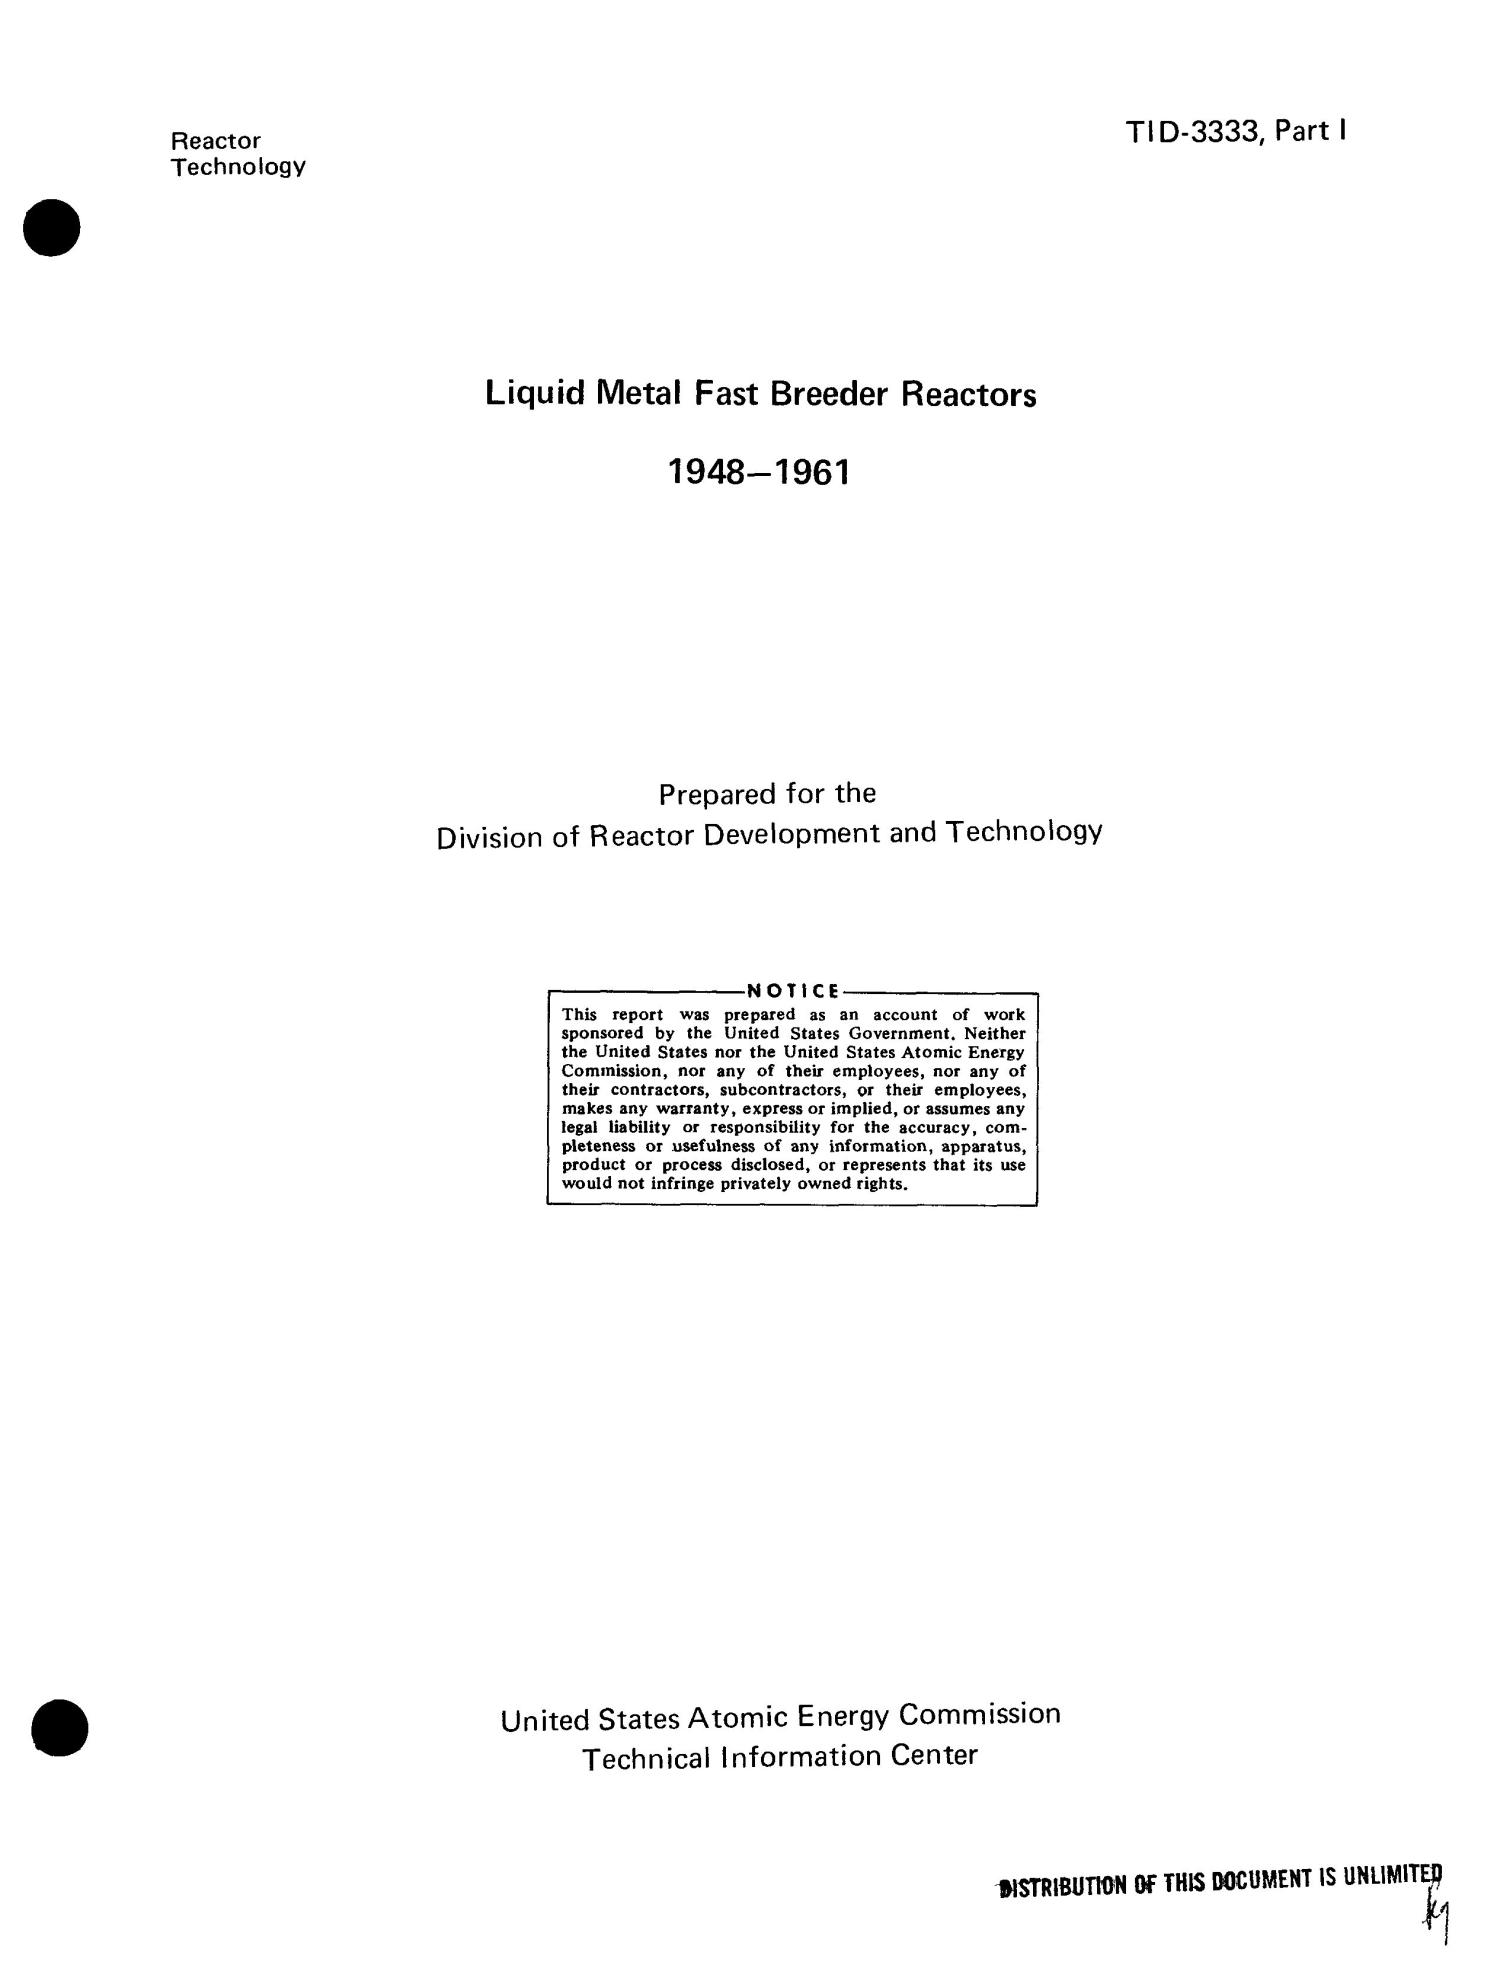 LIQUID METAL FAST BREEDER REACTORS, 1948--1961.                                                                                                      [Sequence #]: 3 of 129